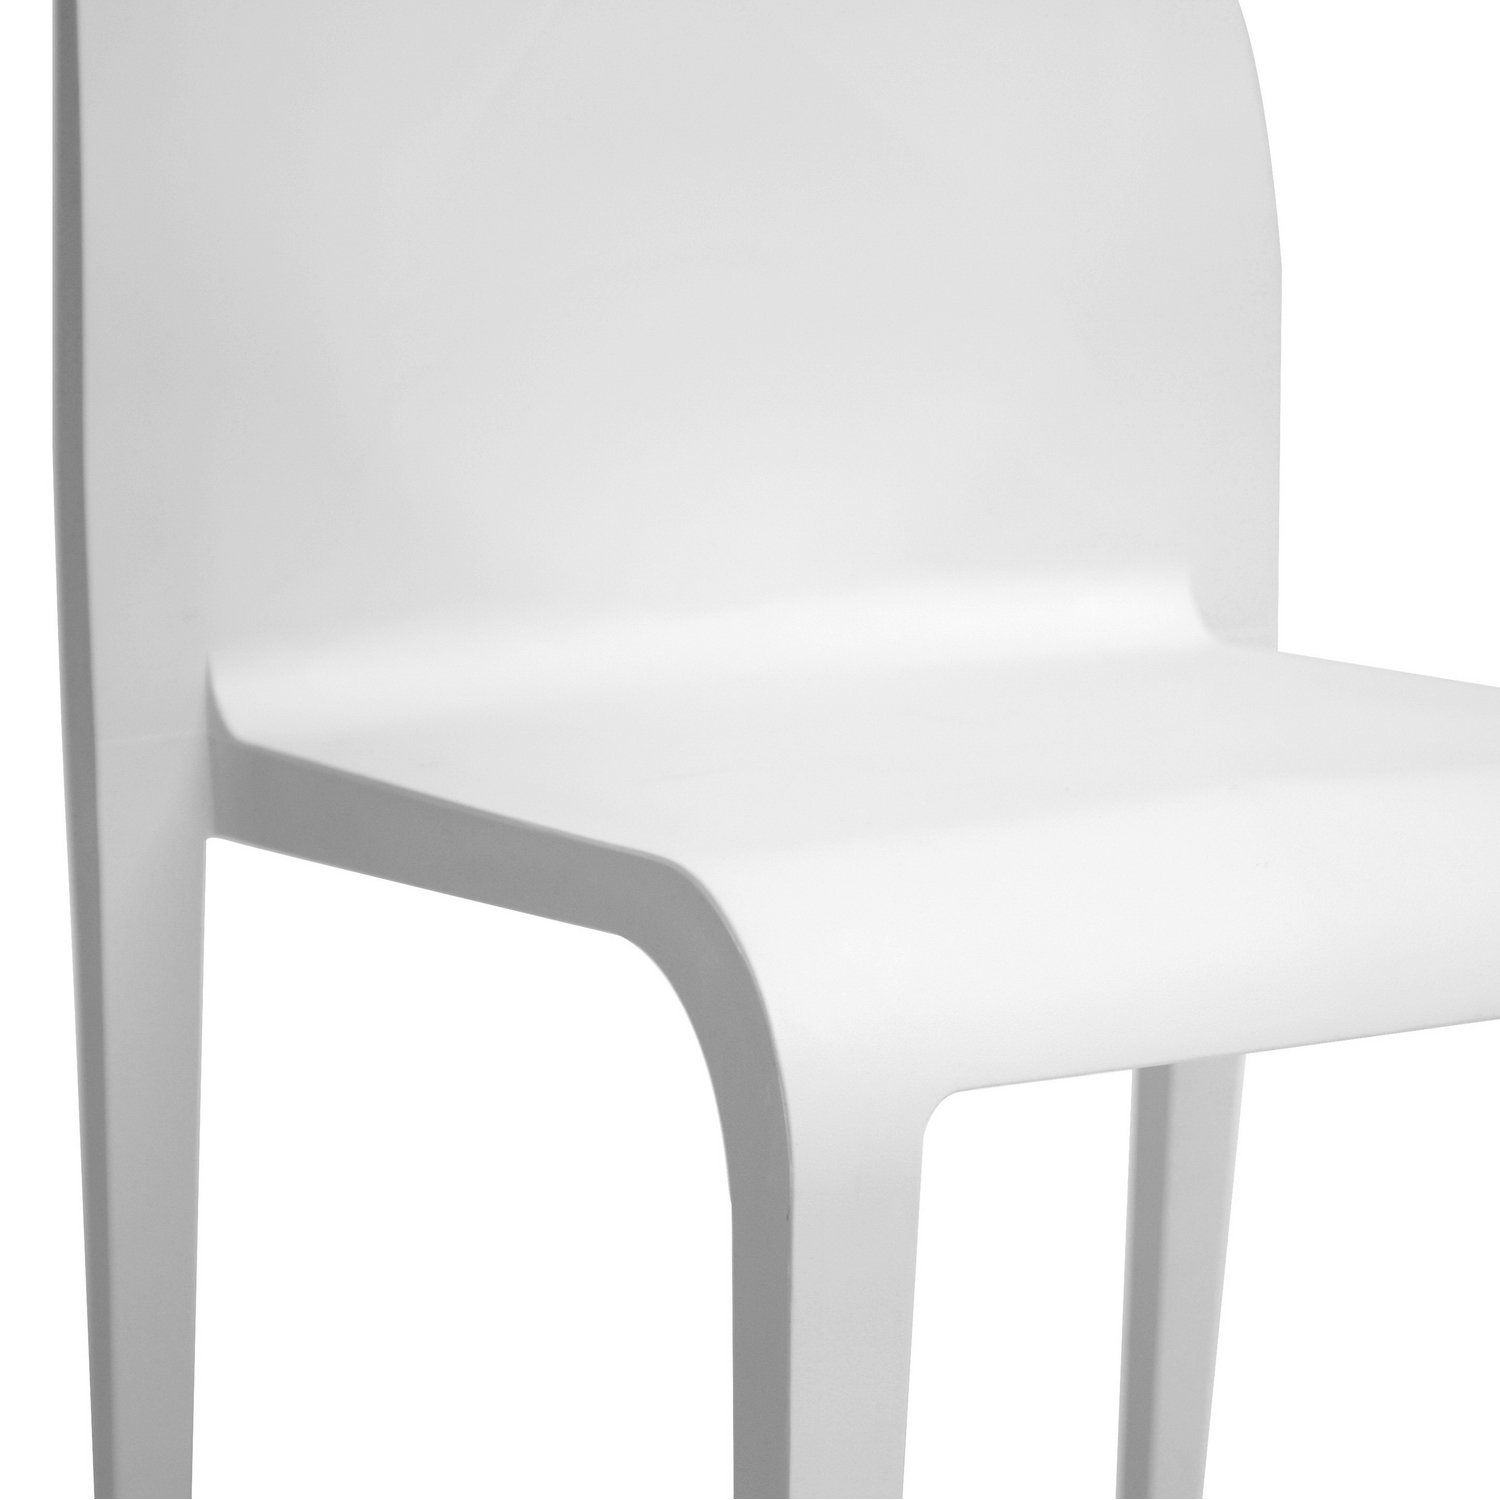 cast diyconcretechair ikea more information homemade for concrete was this chair diy from chairs banner modern in plastic a